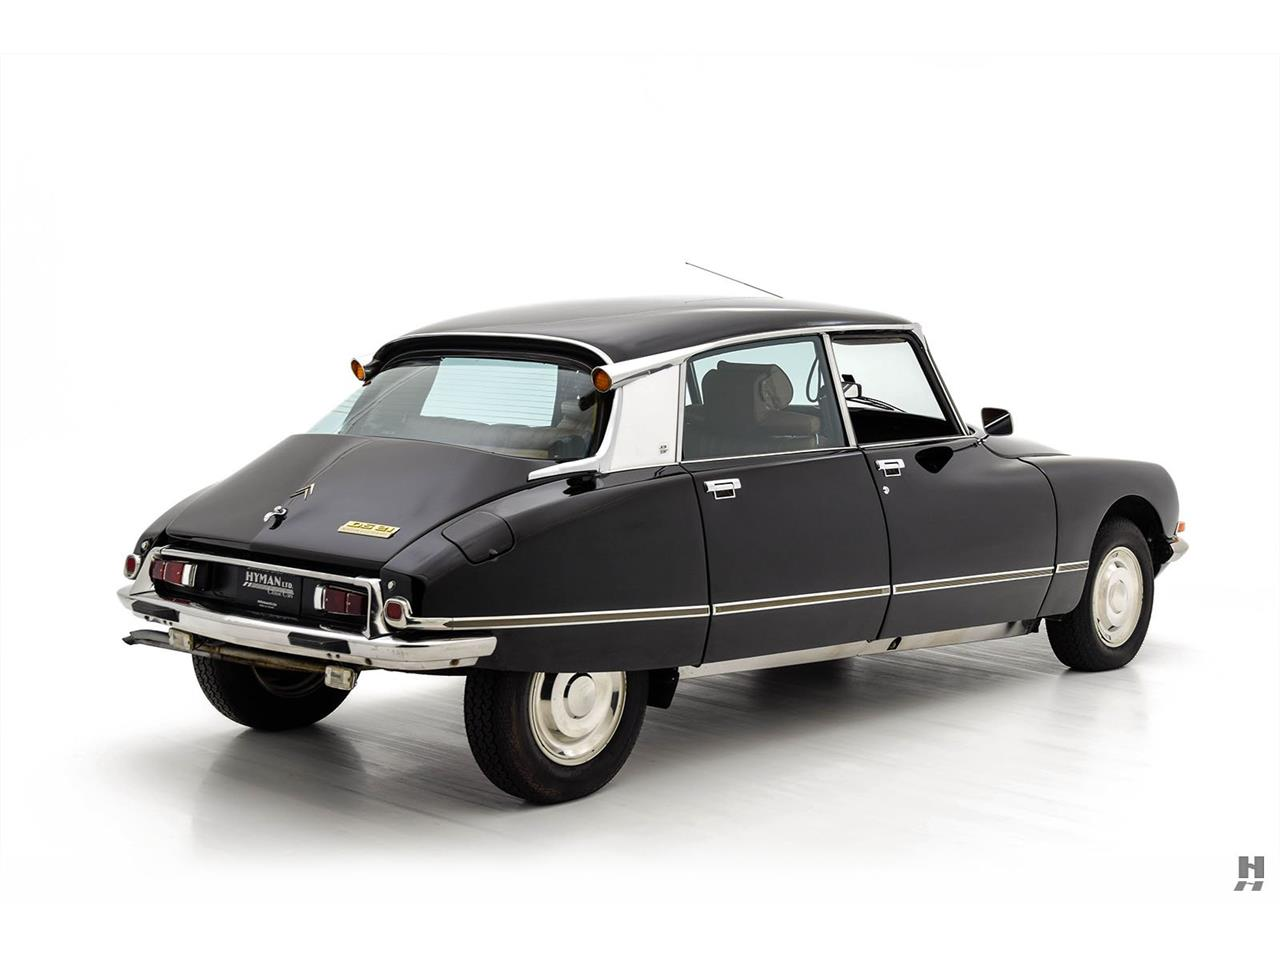 Large Picture of Classic 1972 Citroen DS21 Pallas - $59,500.00 - P3WY